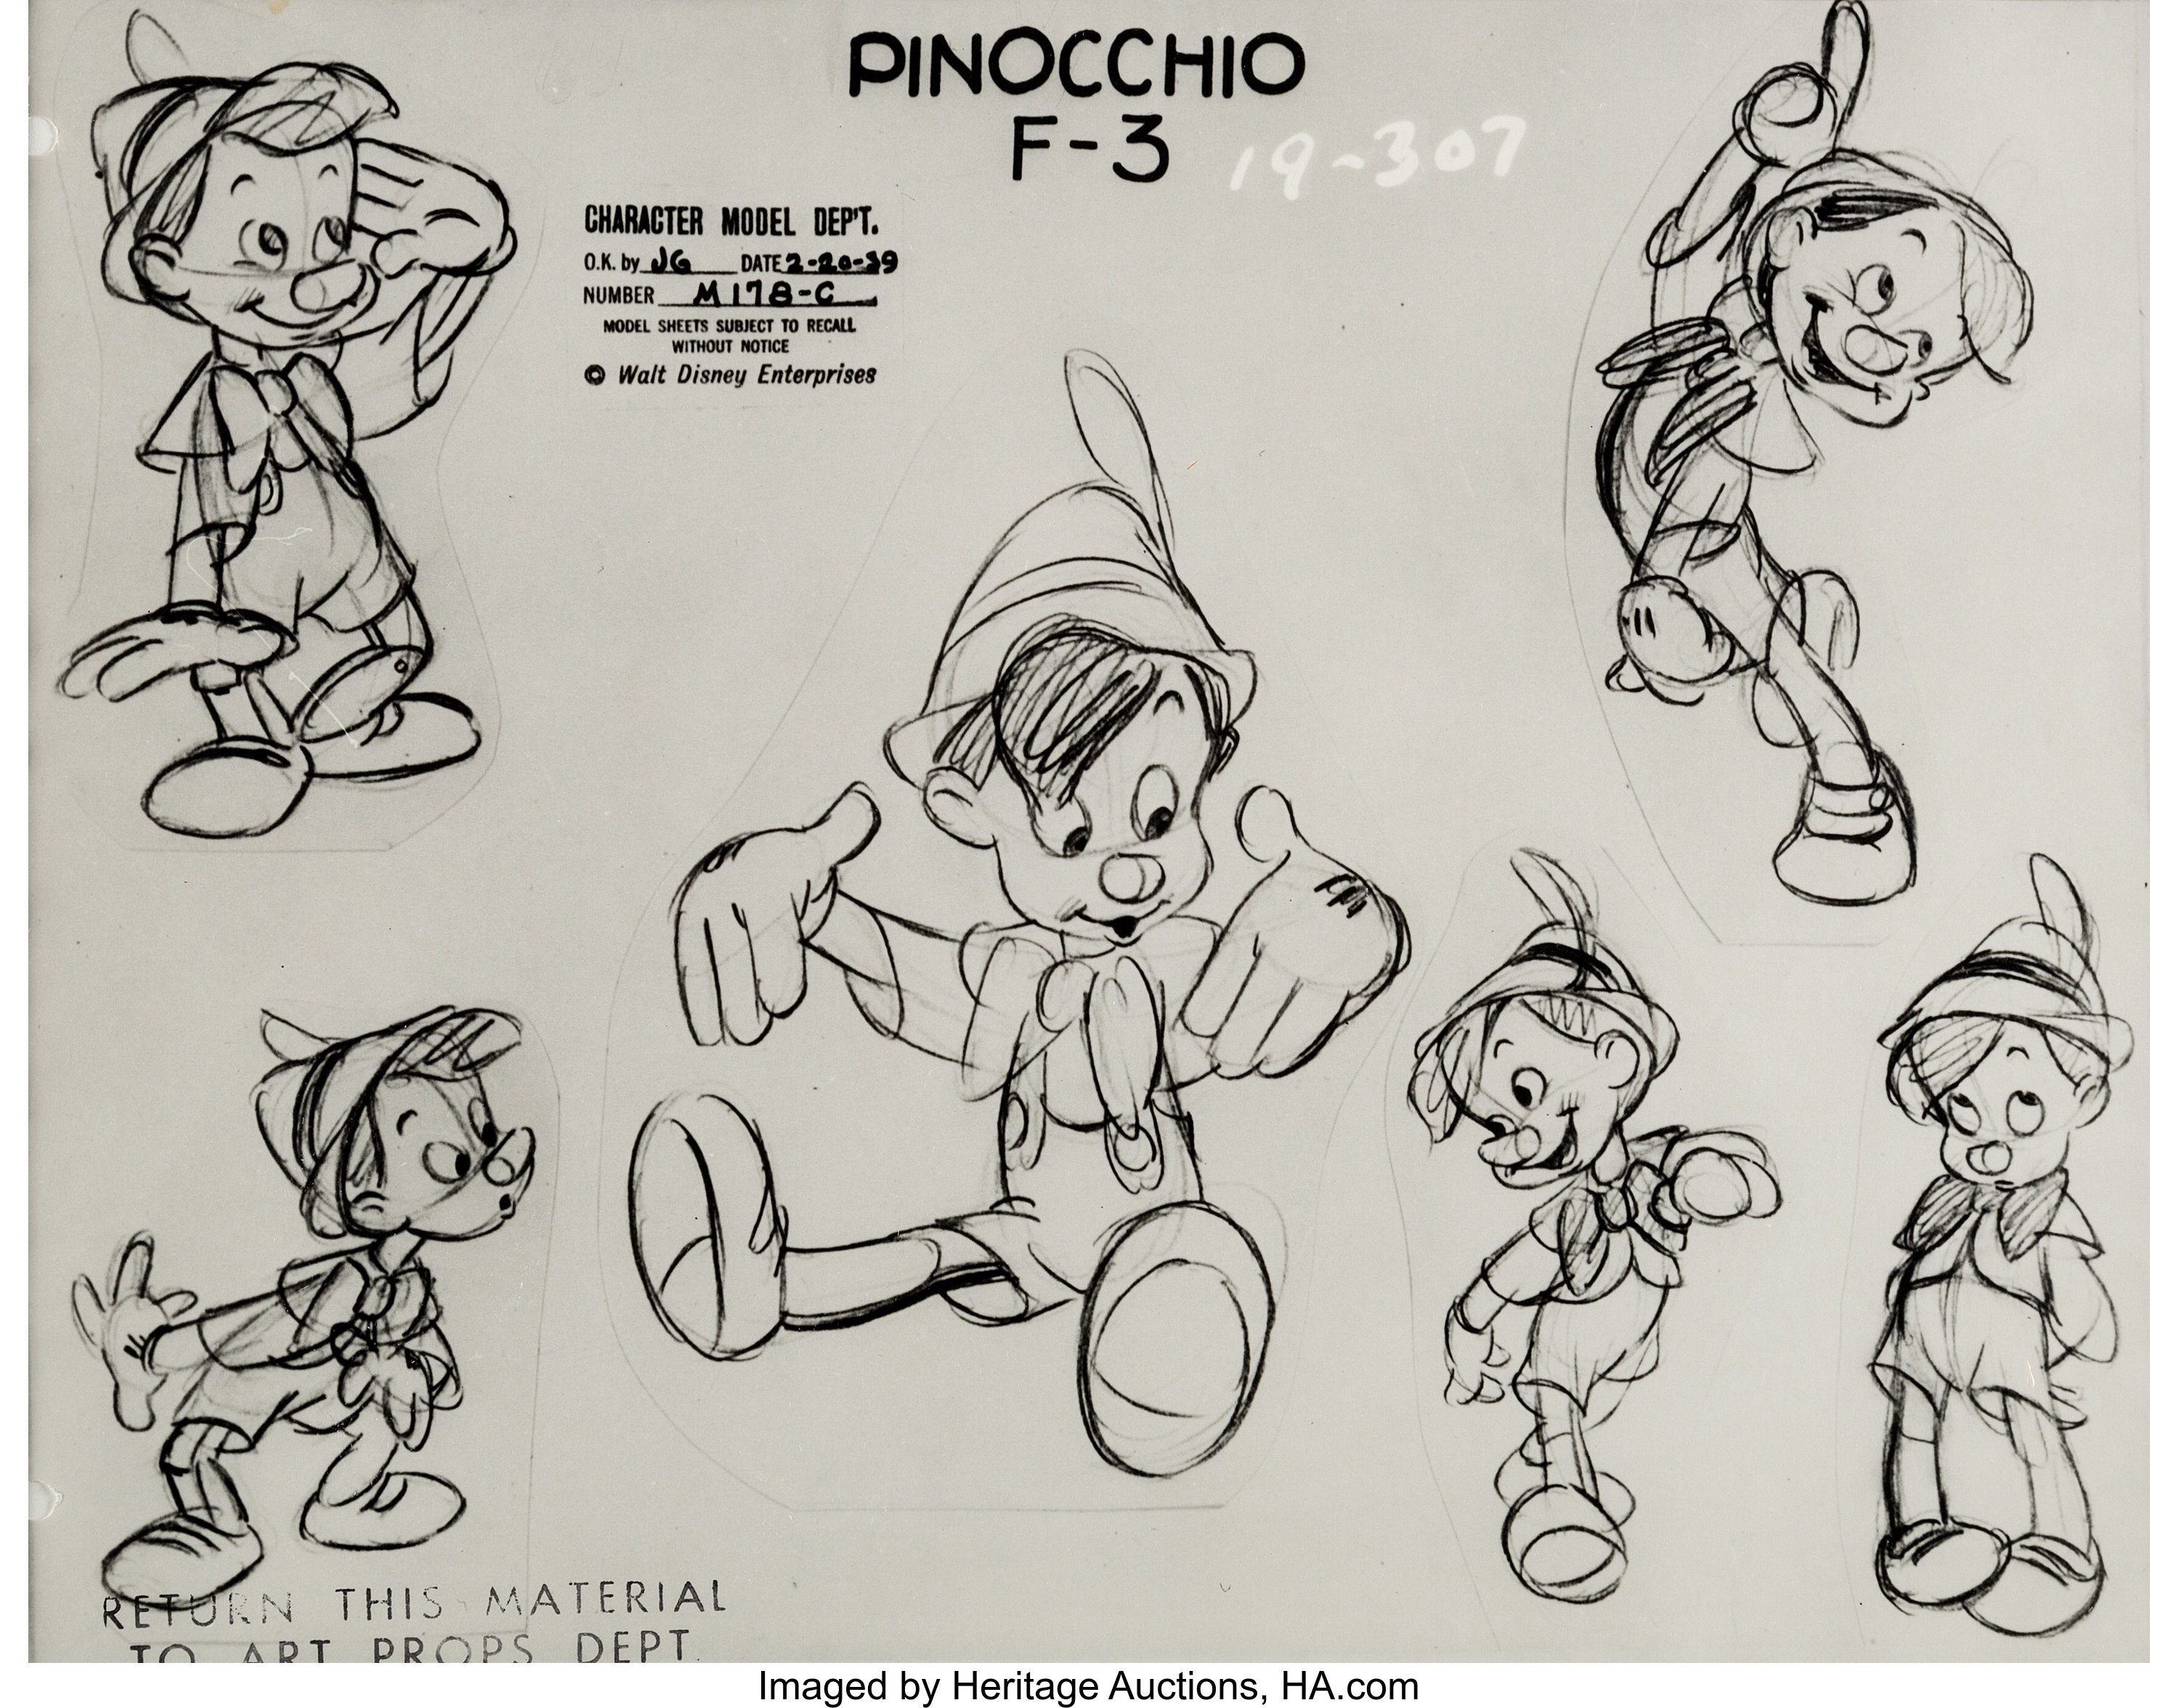 Pinocchio Studio Model Sheet (Walt Disney, 1940)